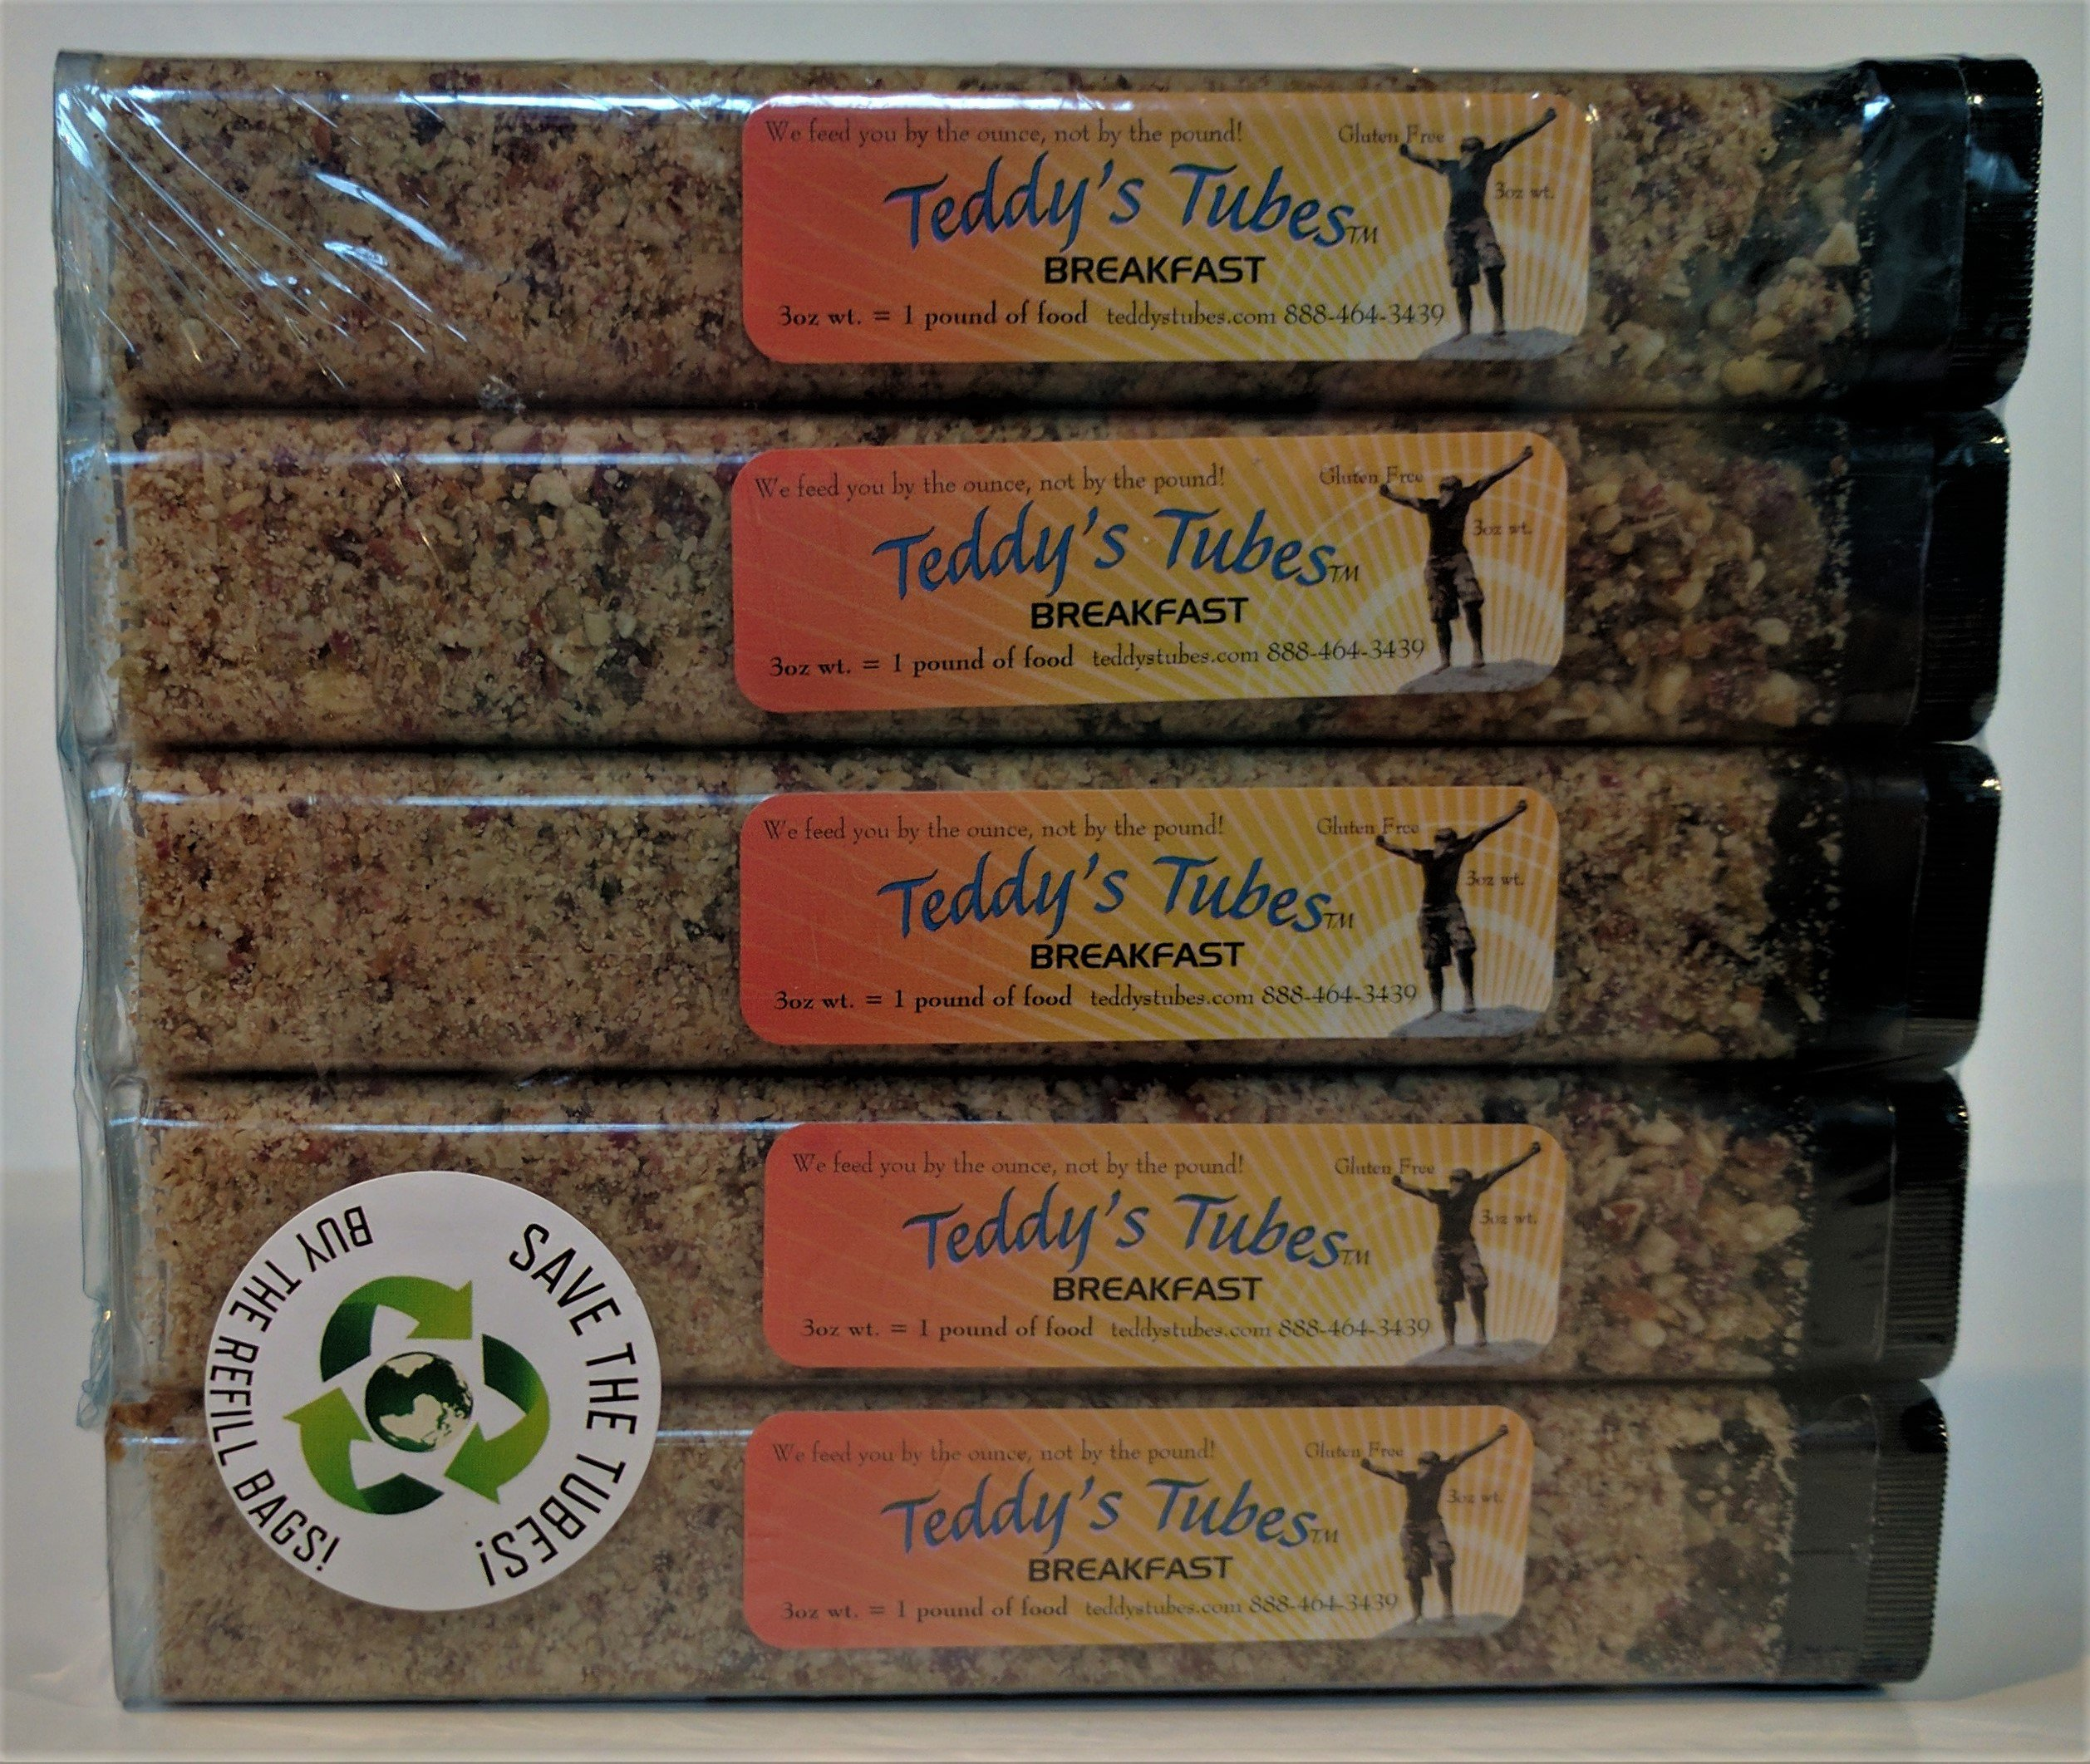 Teddy's Tubes Meal Replacement - Breakfast Tubes - 5 Pack